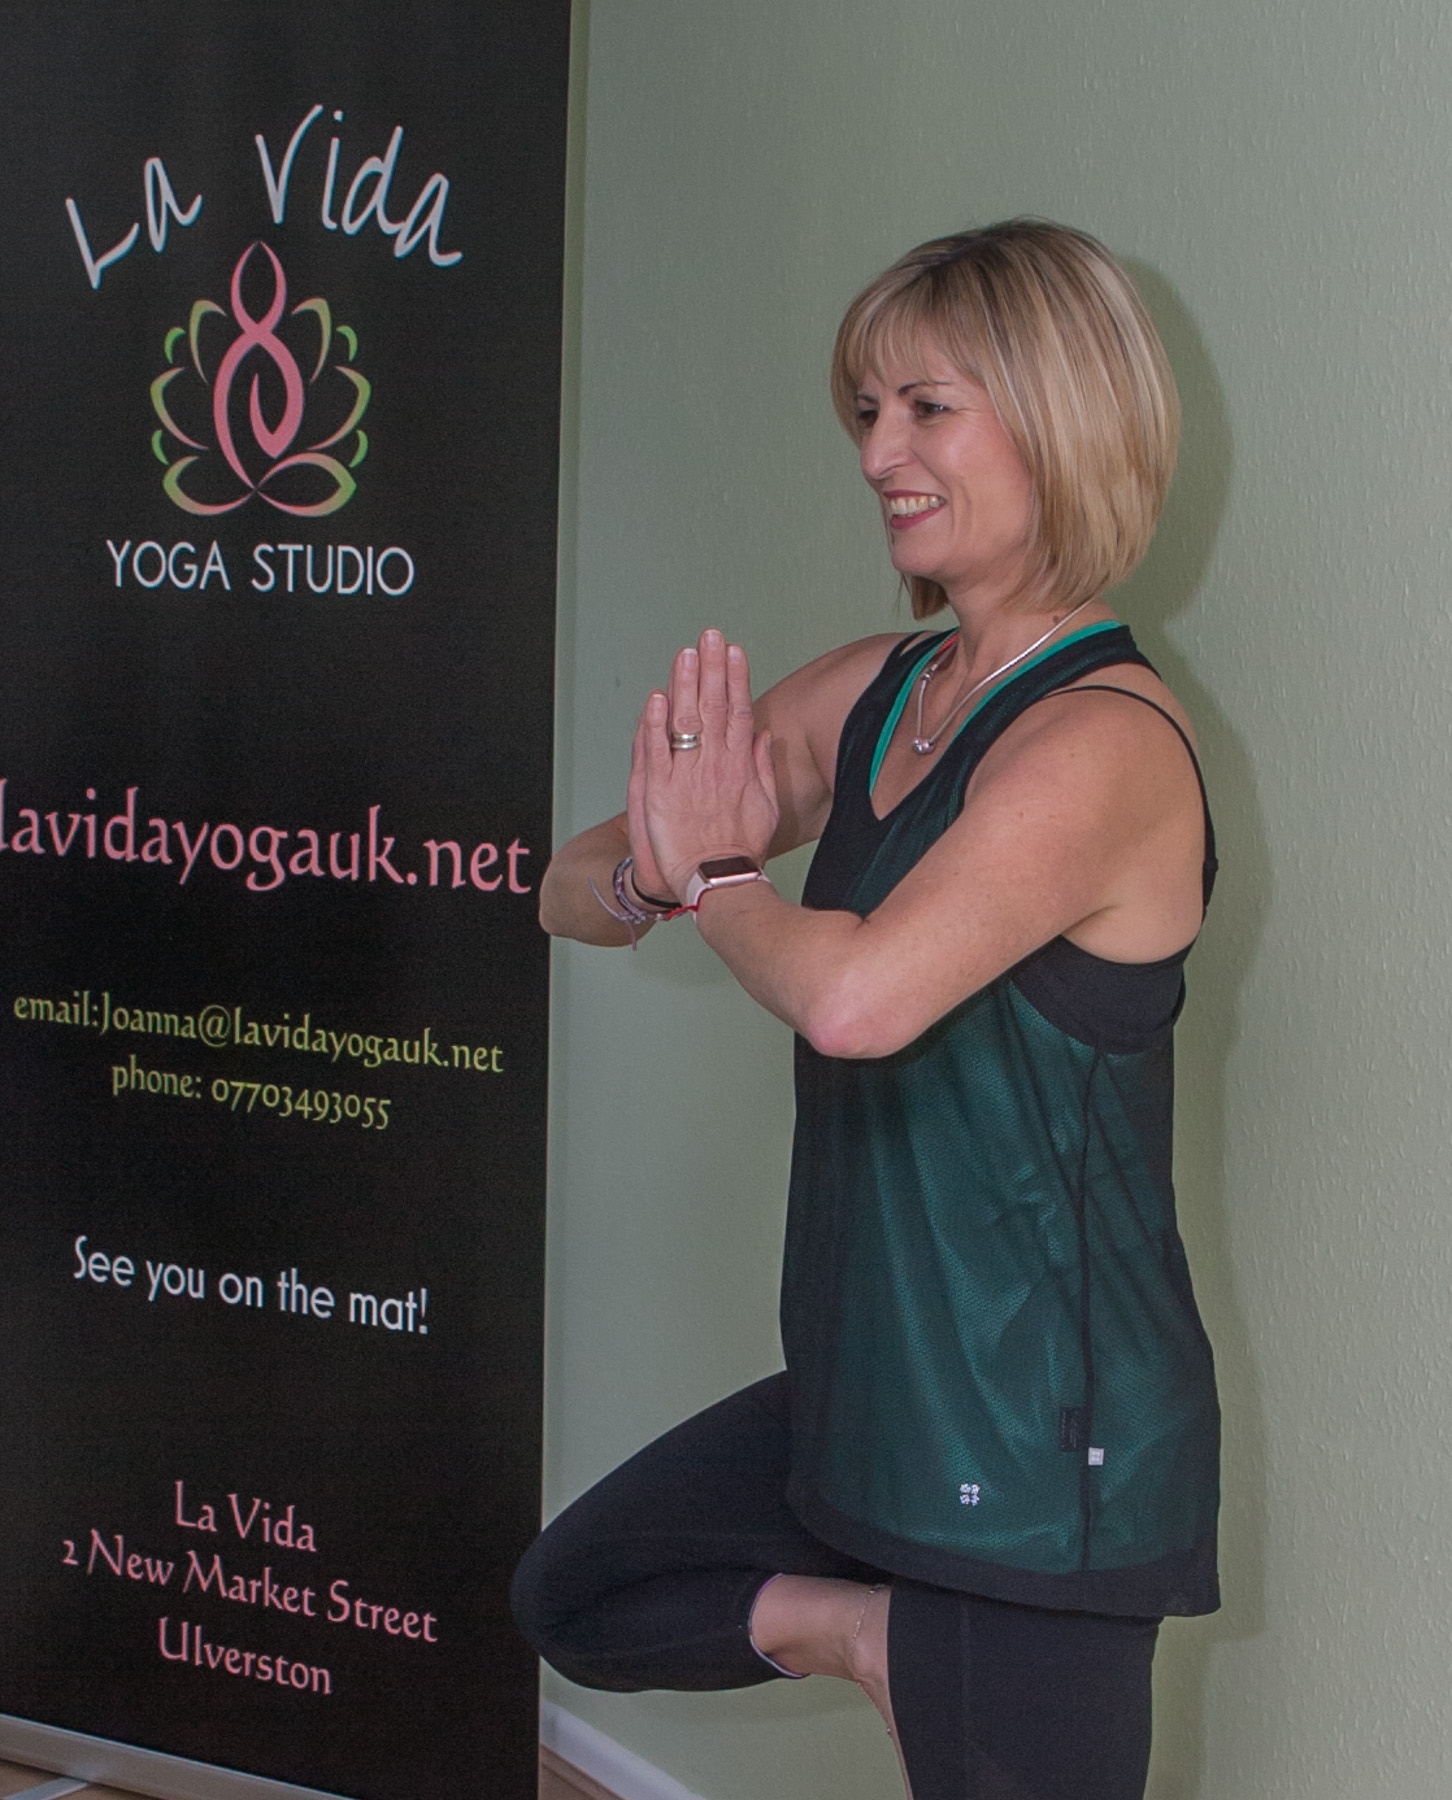 Unlimited Monthly Membership - Attend unlimited classes each month, including courses.Includes 15% discount on workshopsIncludes 4 guest passes available for you to use for family and friends.5% discount on any treatments with our therapists.cost £60 per month. Minimum sign up is 3 months.This is a payment of £2.17 a day paid monthly